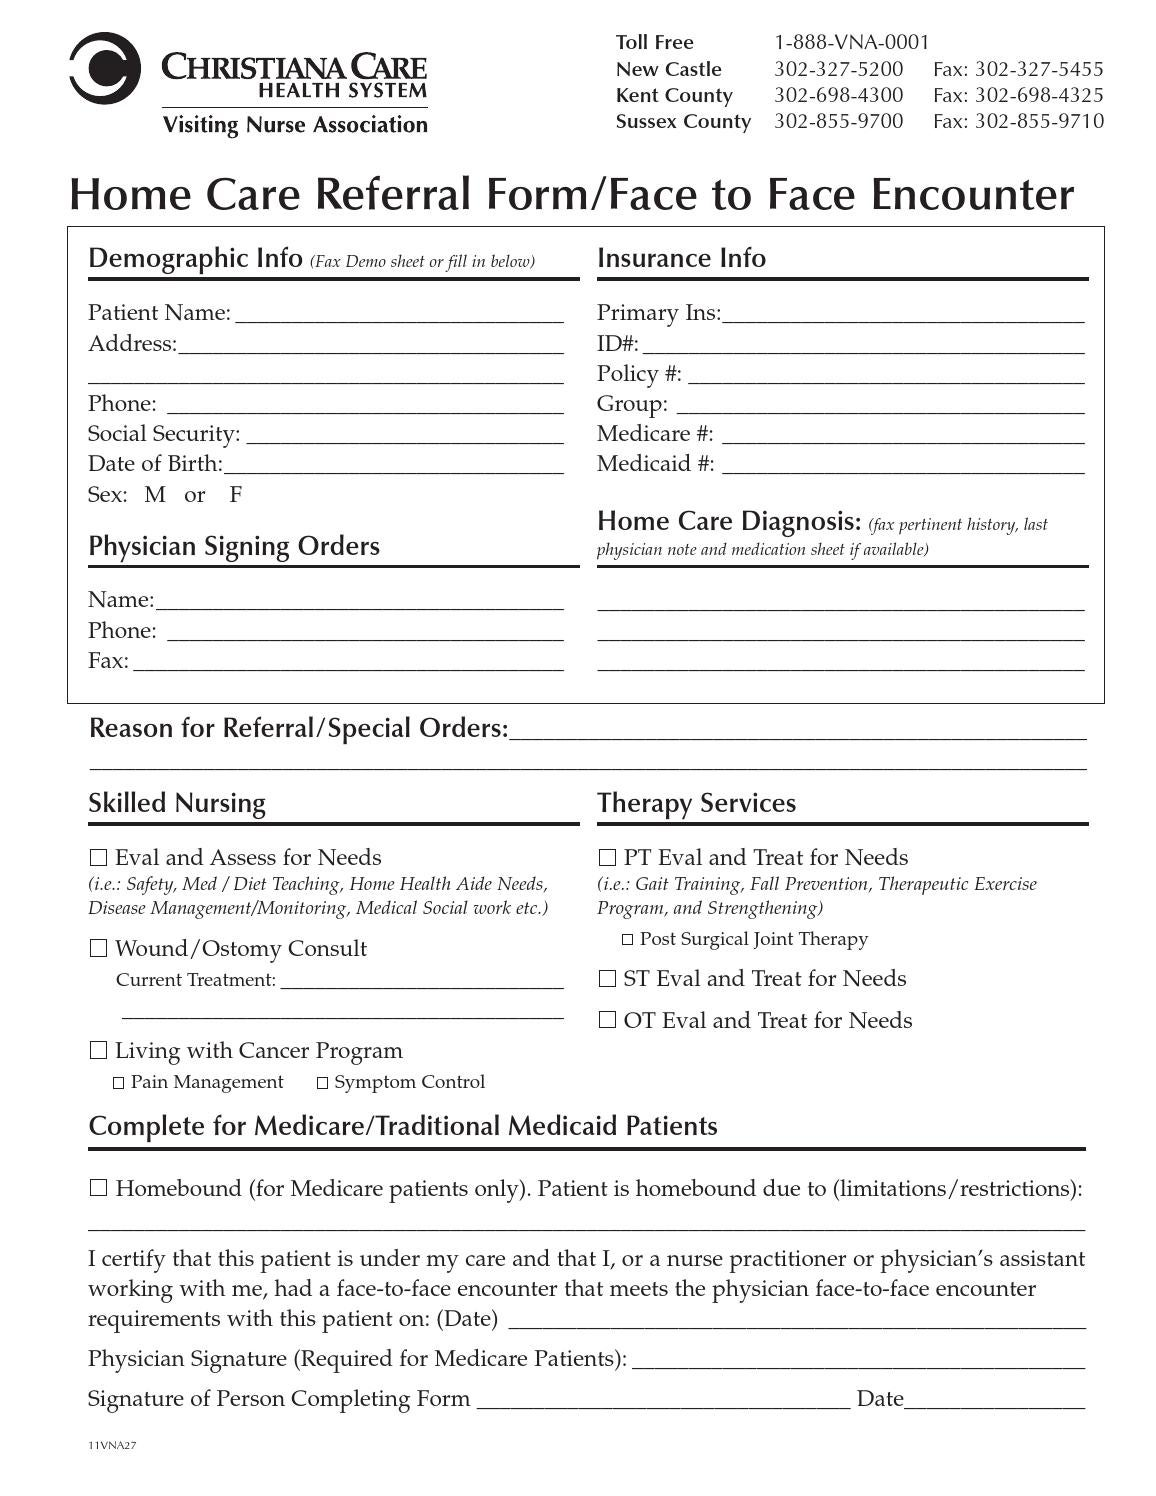 home care referral form by christiana care health system